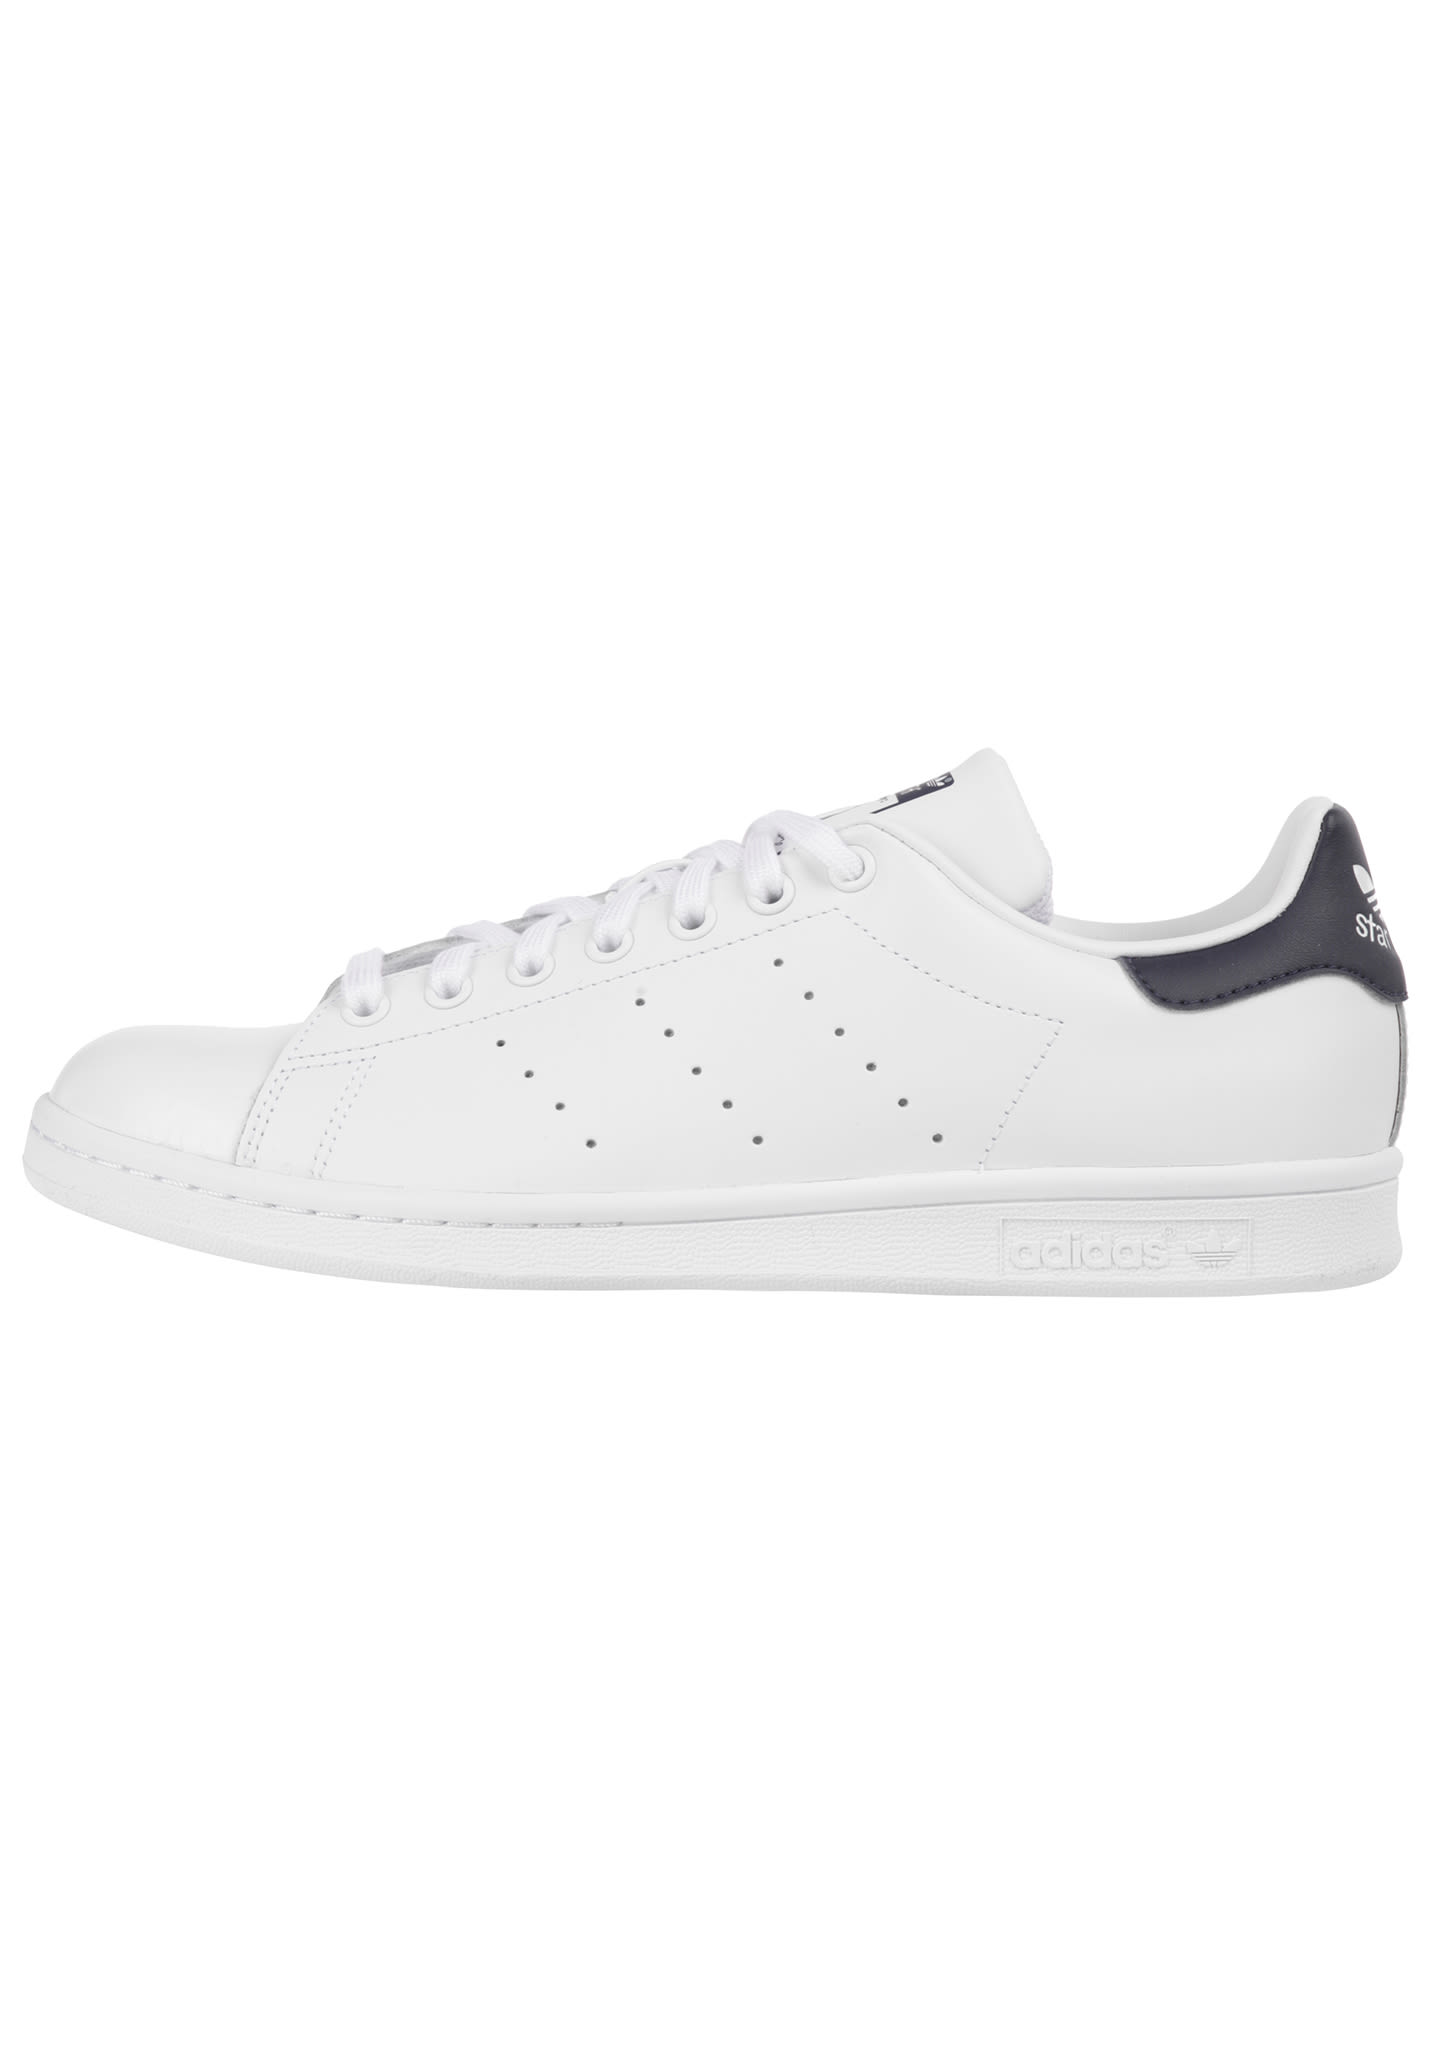 Teddy Smith Cher Pas Adidas chaussure Smith mnw0v8N